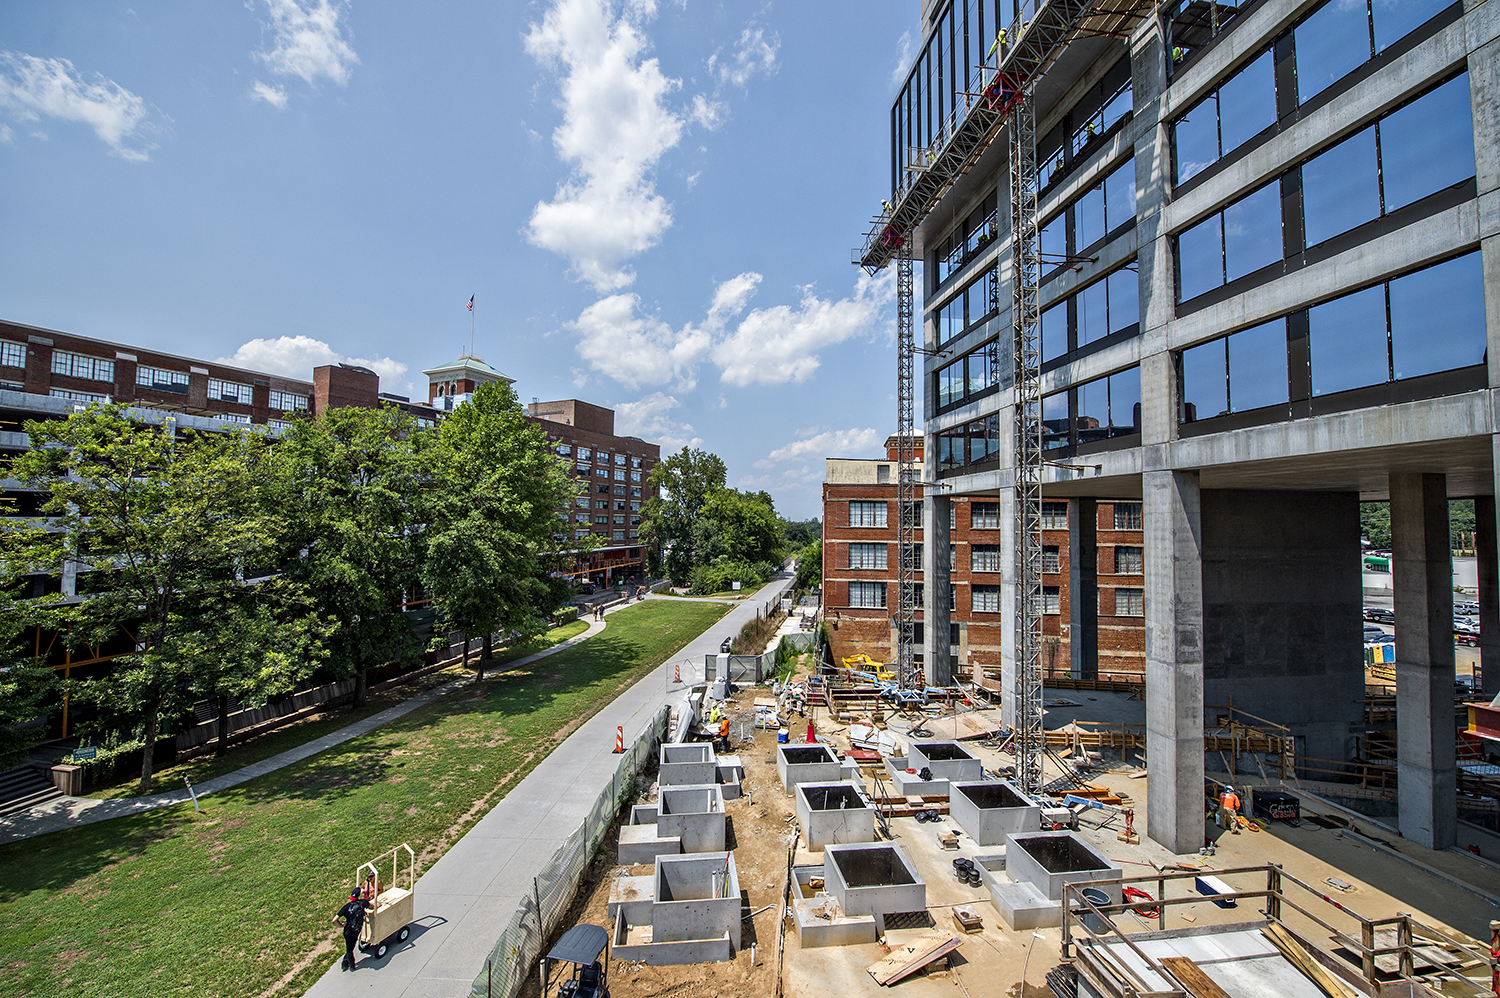 A photo of tree planters with attached benches and other public areas that will provide a respite for Beltline patrons at 725 Ponce, the trail's largest new office build to date.